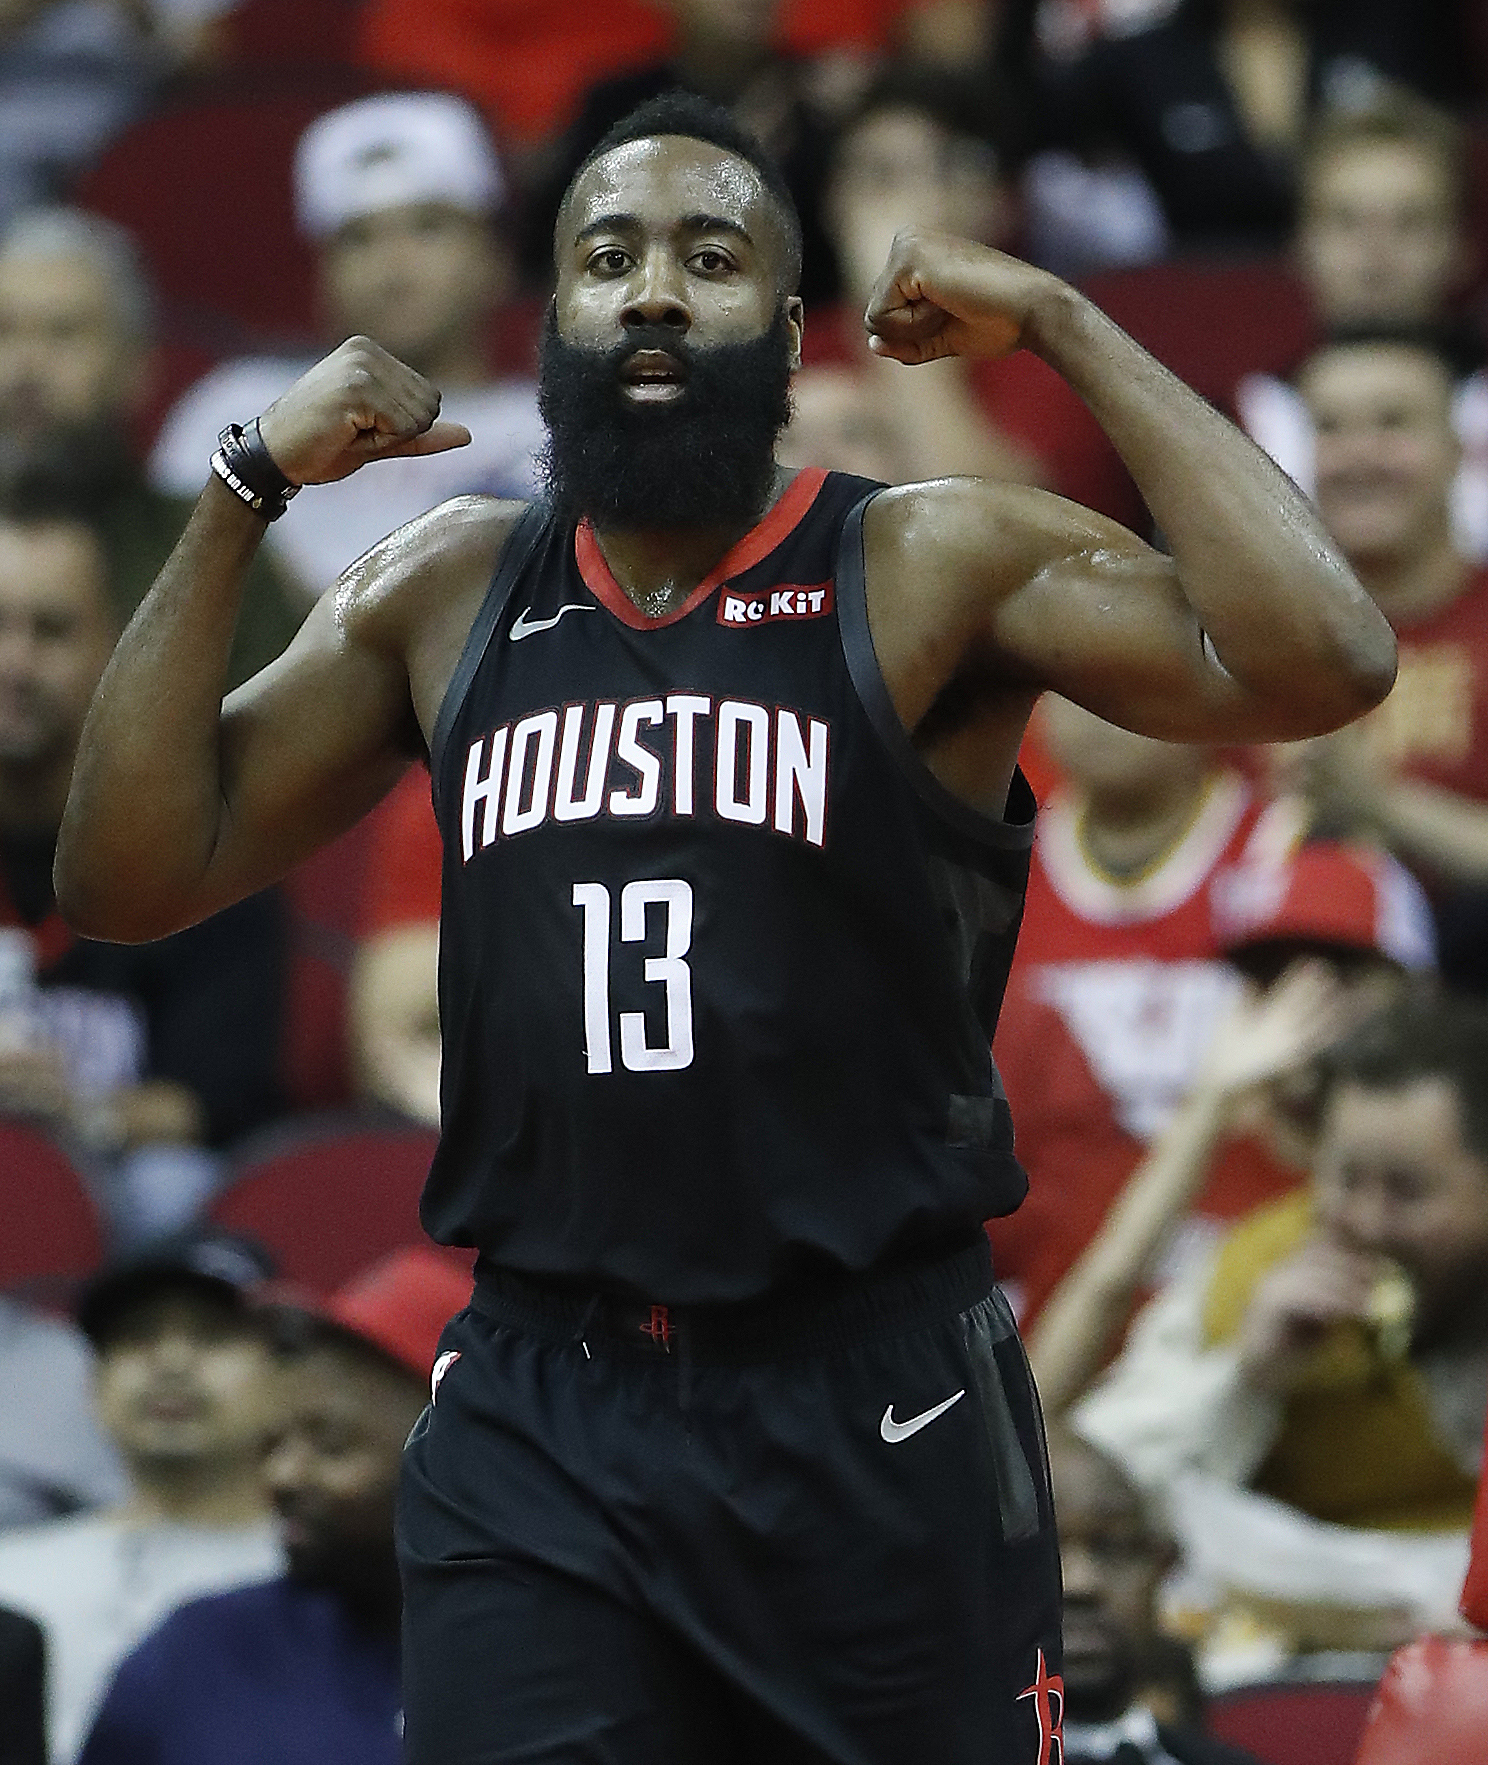 84adaa2b4cf0 James Harden run sends Rockets past Jazz - Houston Chronicle